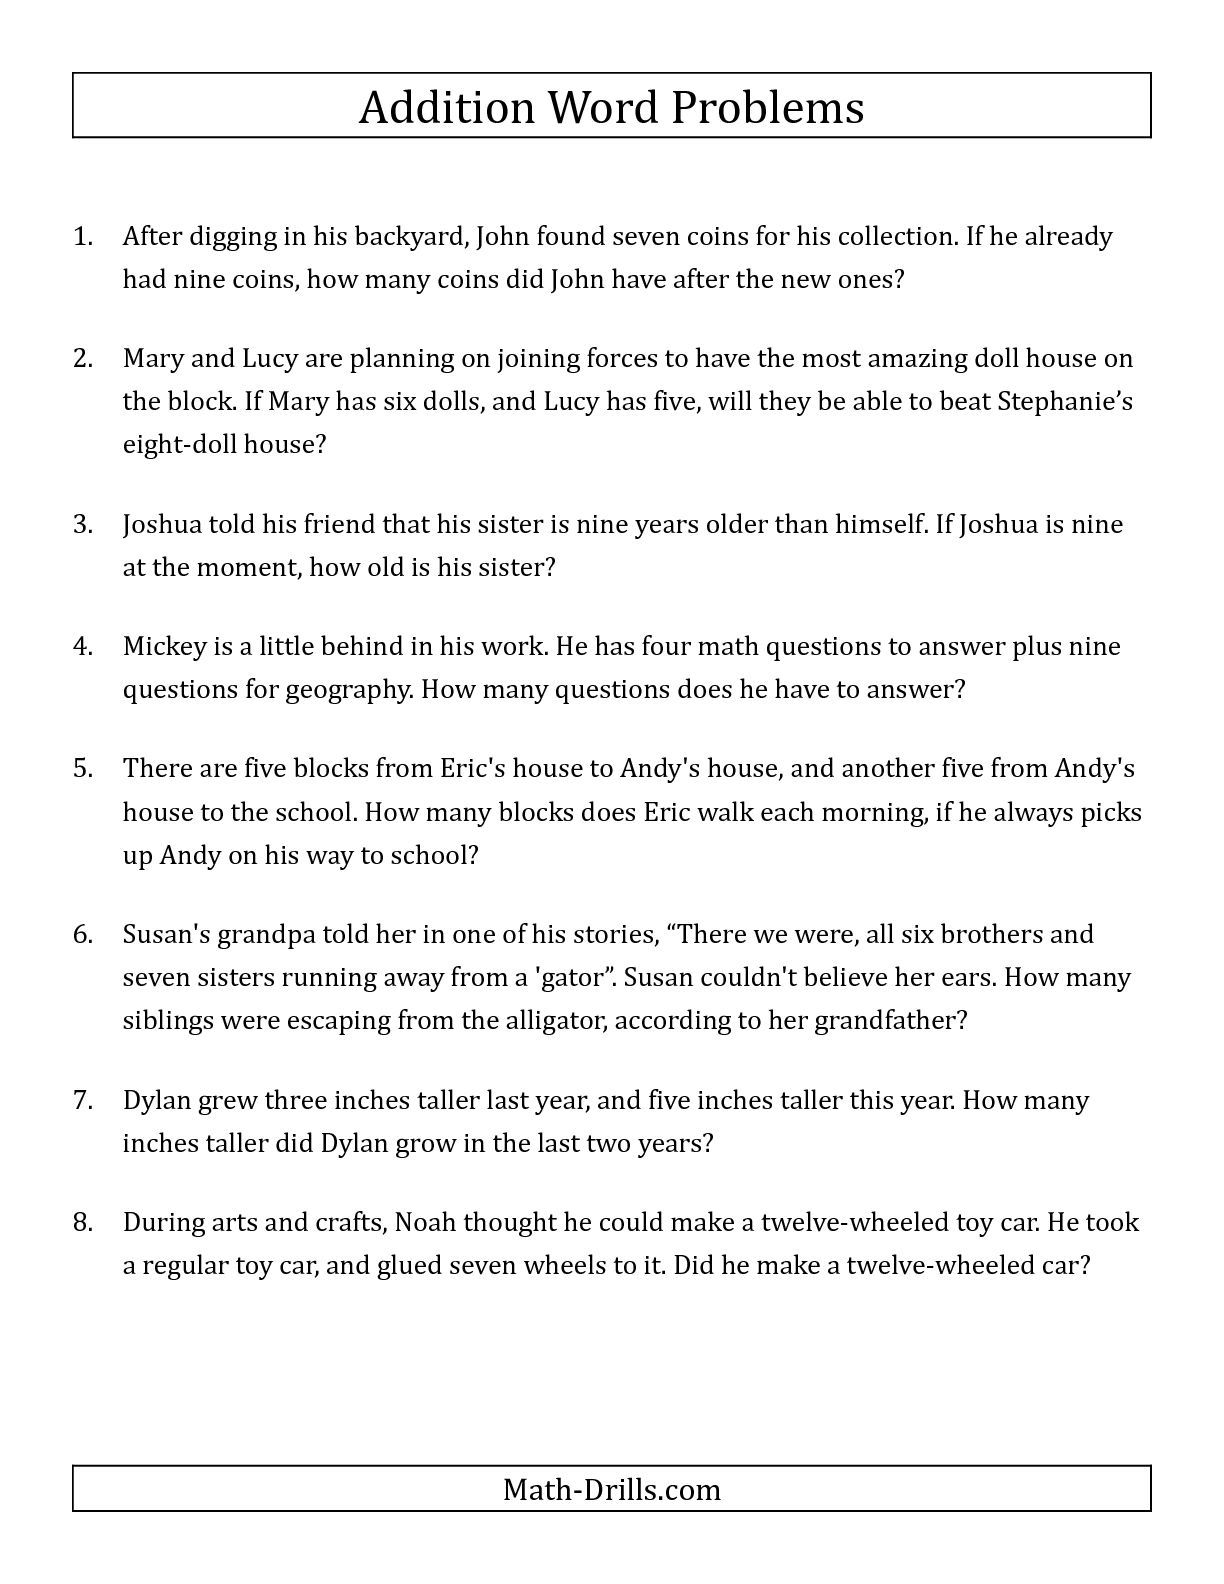 Worksheet Addition Story Problems the single step addition word problems using digit numbers a word